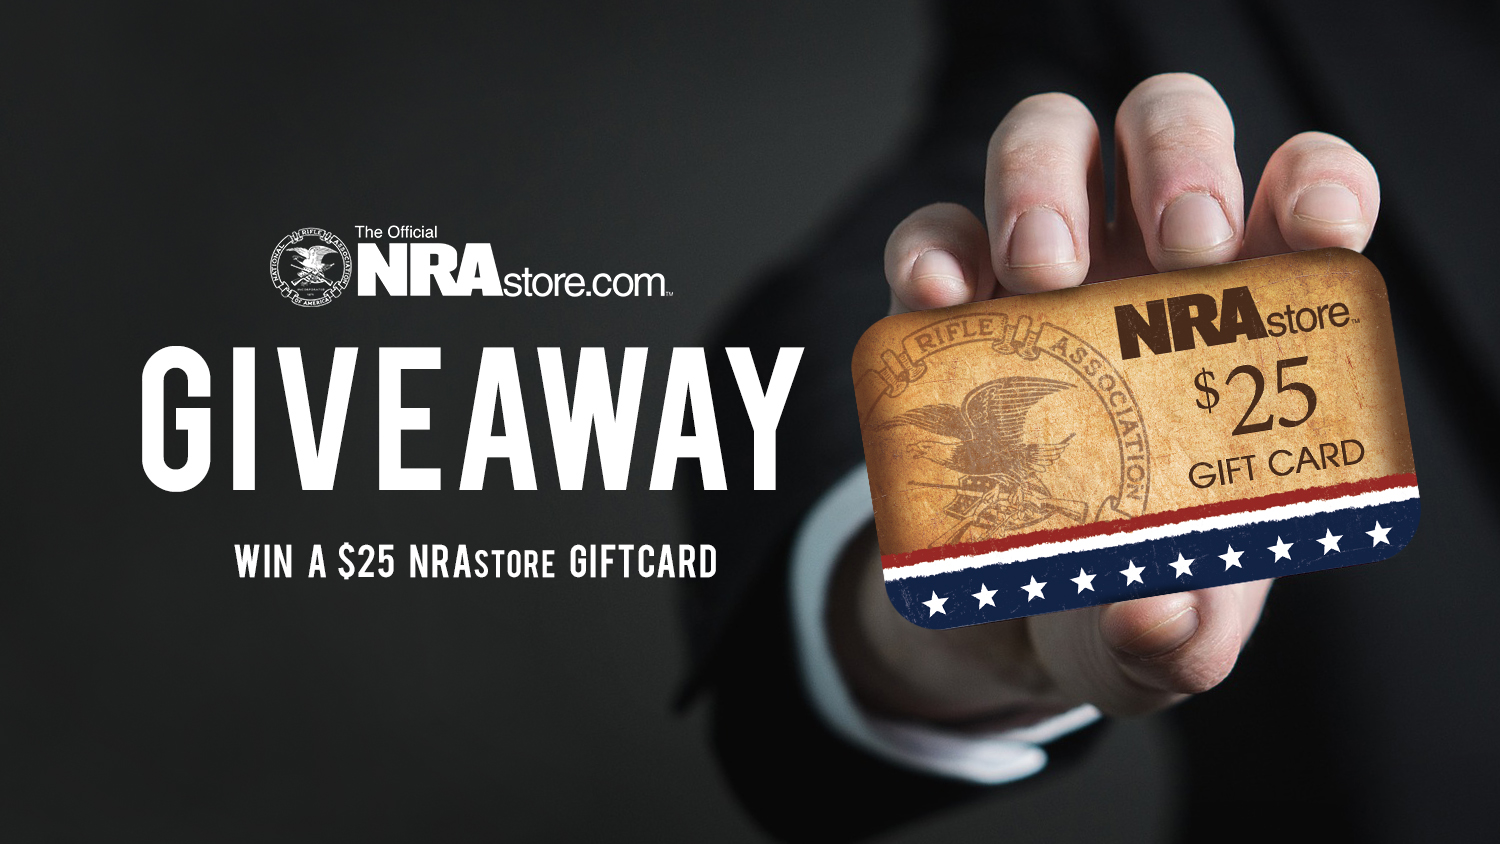 Enter To Win A FREE $25 Gift Card From The NRAstore